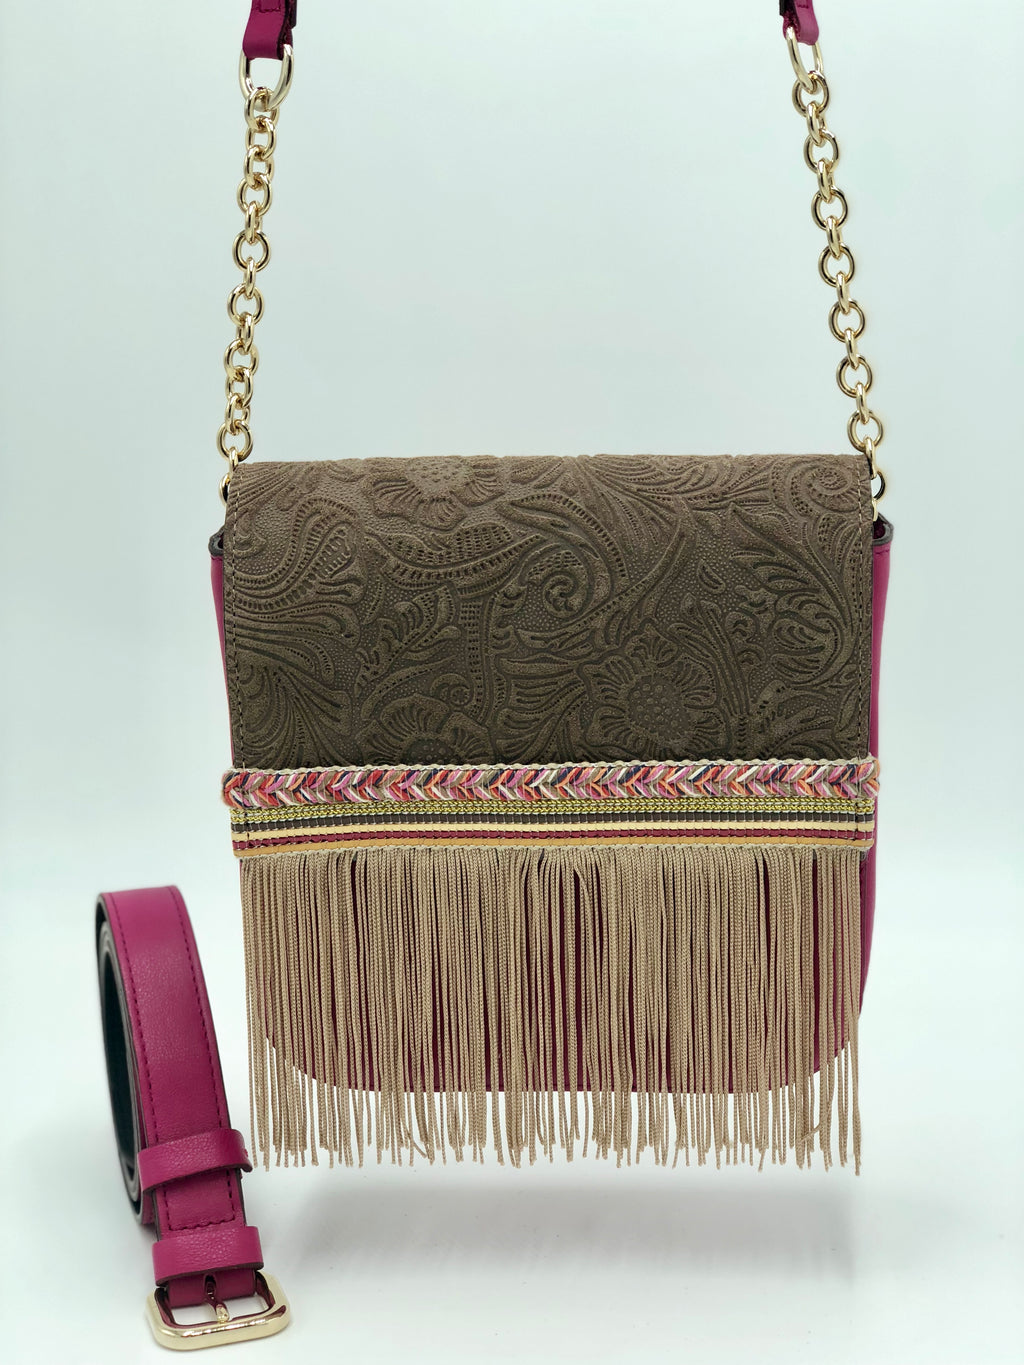 Pink and brown embossed leather bag with fringes